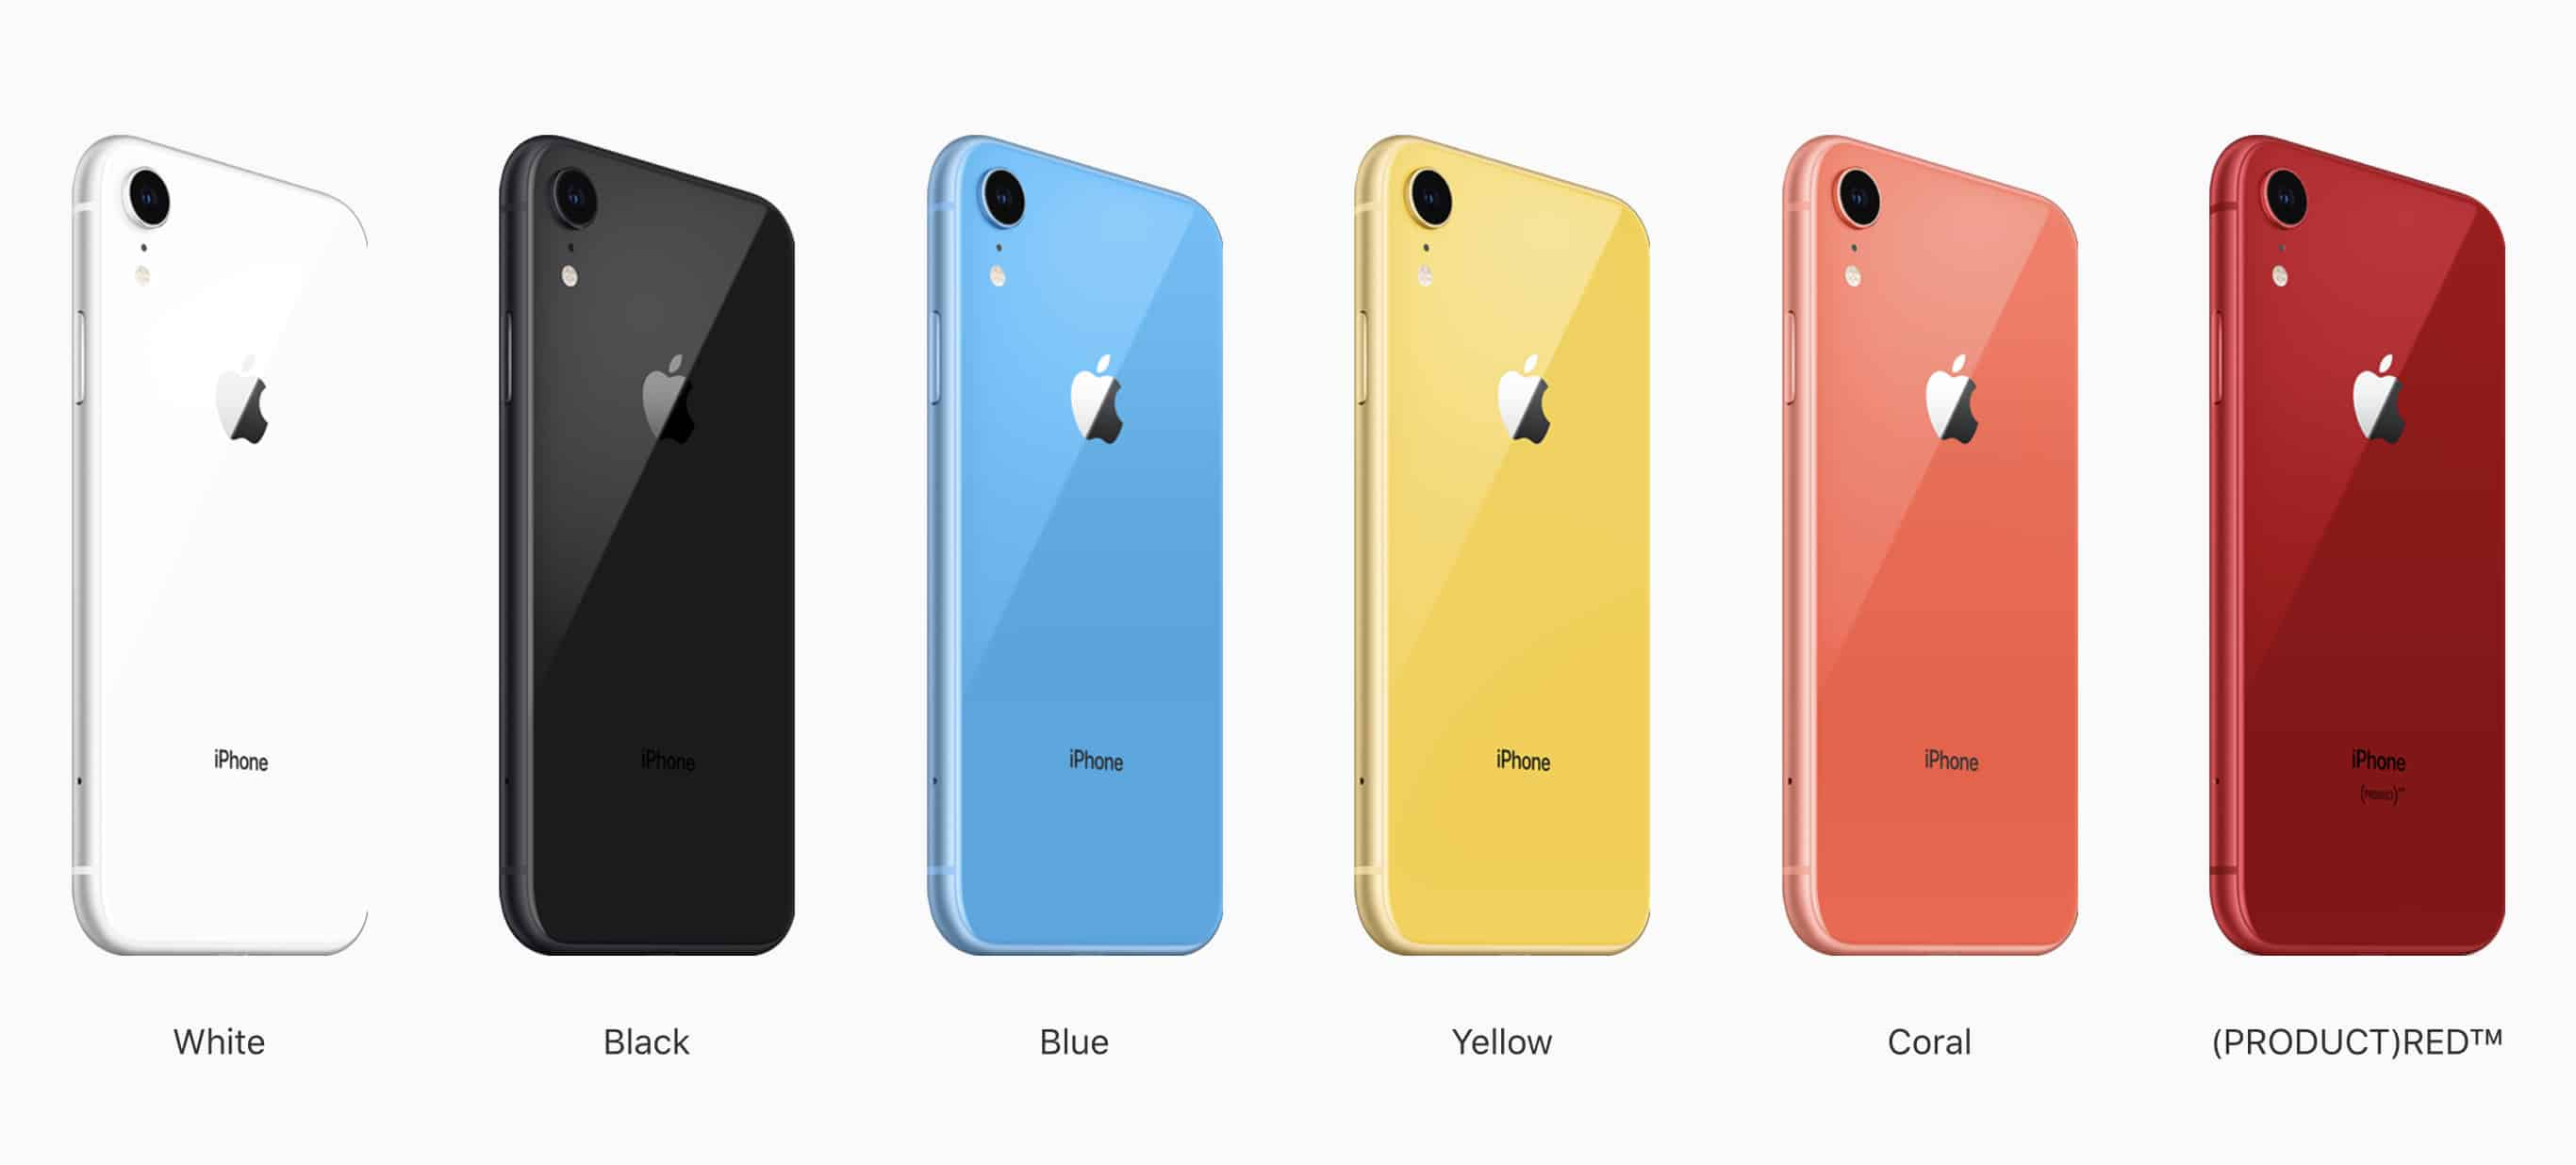 Nearly every configuration of the Apple's latest handset is still available hours into launch day. What does this say about iPhone XR sales?